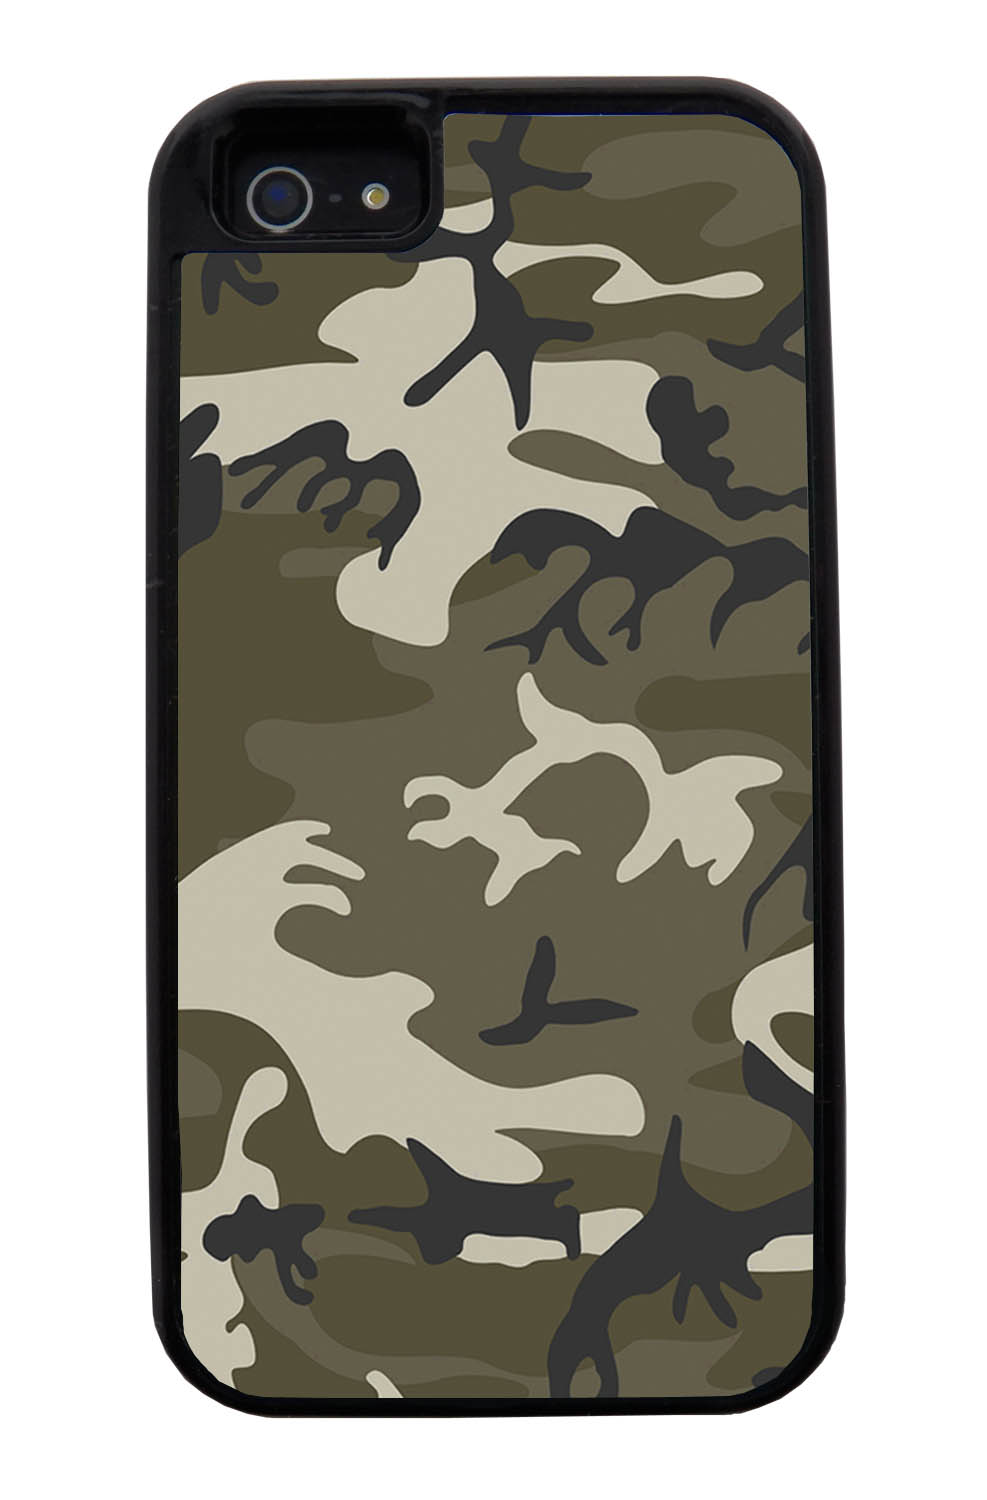 Apple iPhone 5 / 5S Camo Case - Traditional - Woodland - Black Tough Hybrid Case